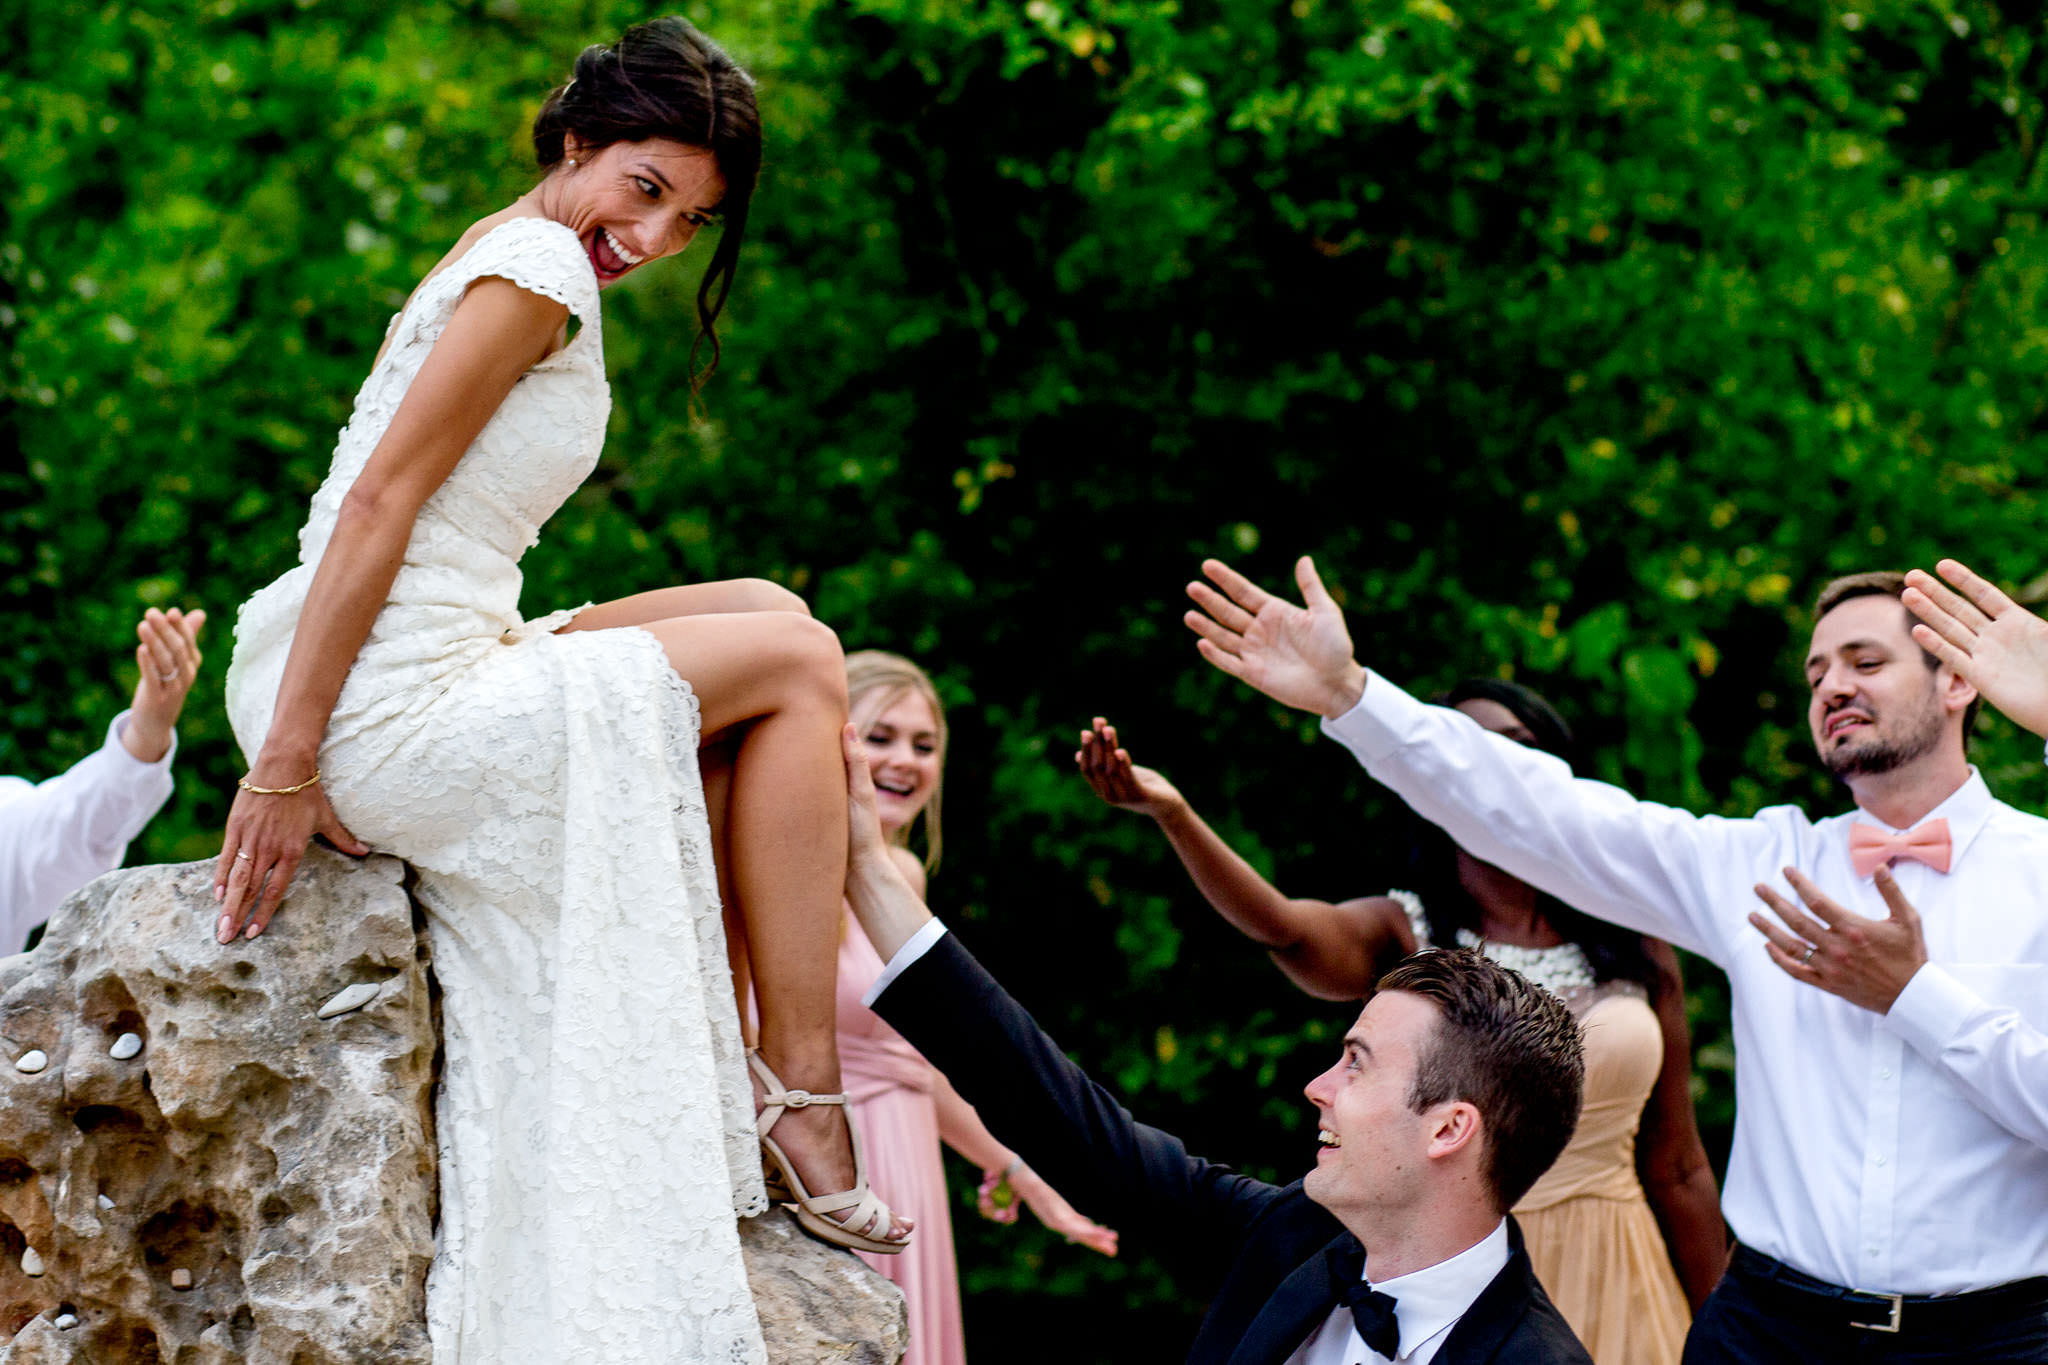 Bride laughing with bridal party at chateau wedding in Cirque de Navacelles outside Montpellier France